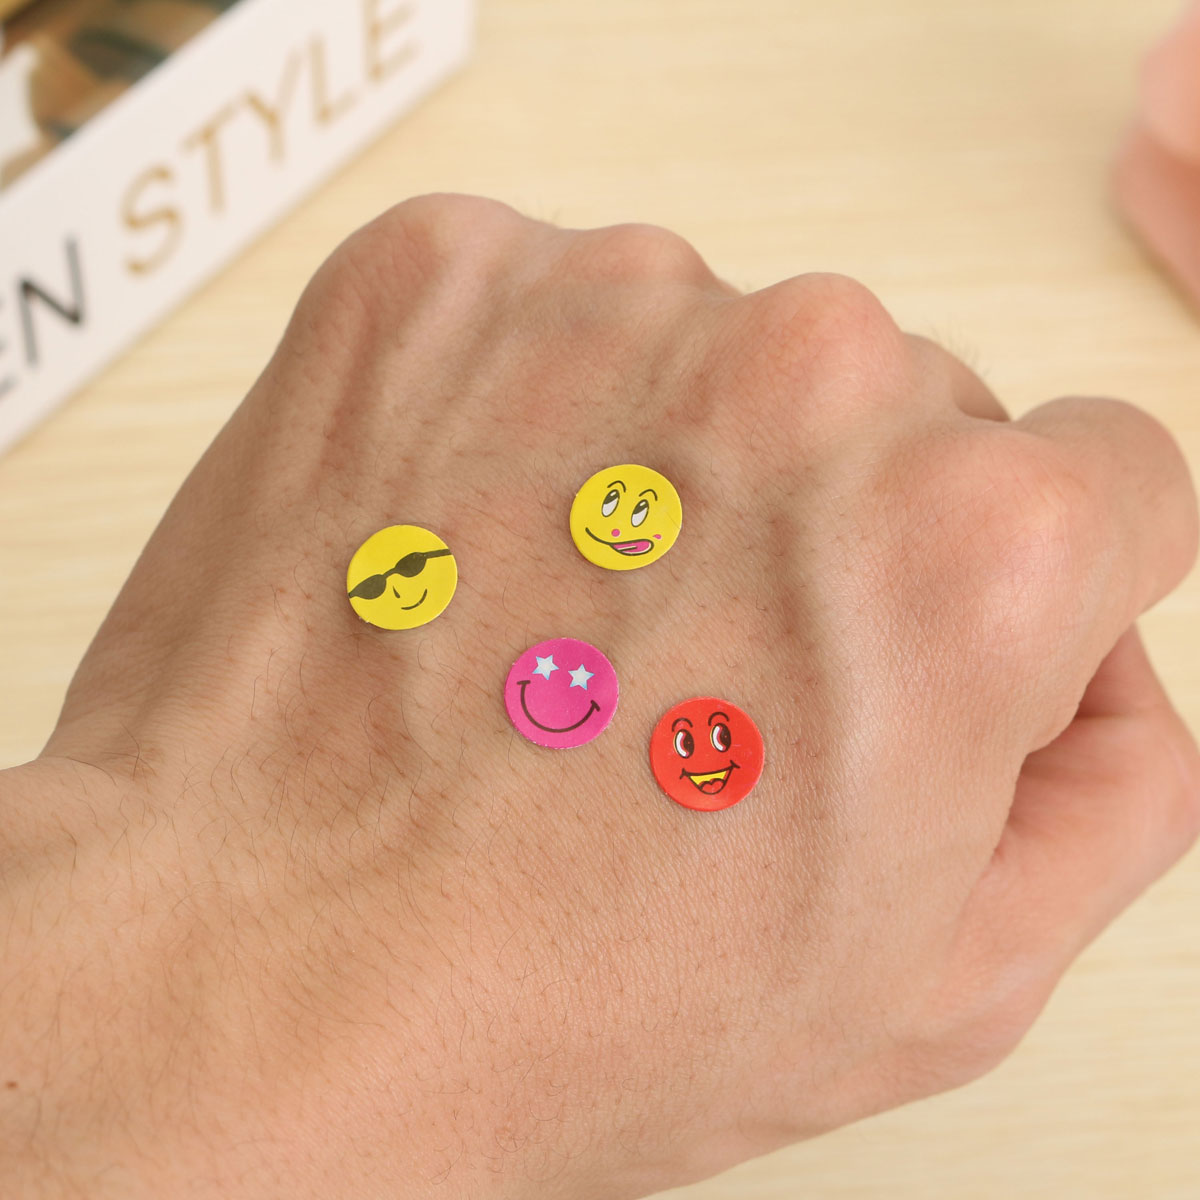 10 Sheets Best Price Mixed Color Lovely Smiley Faces Stickers Childrens School Teacher Useful Gift Reward Well Done Stickers